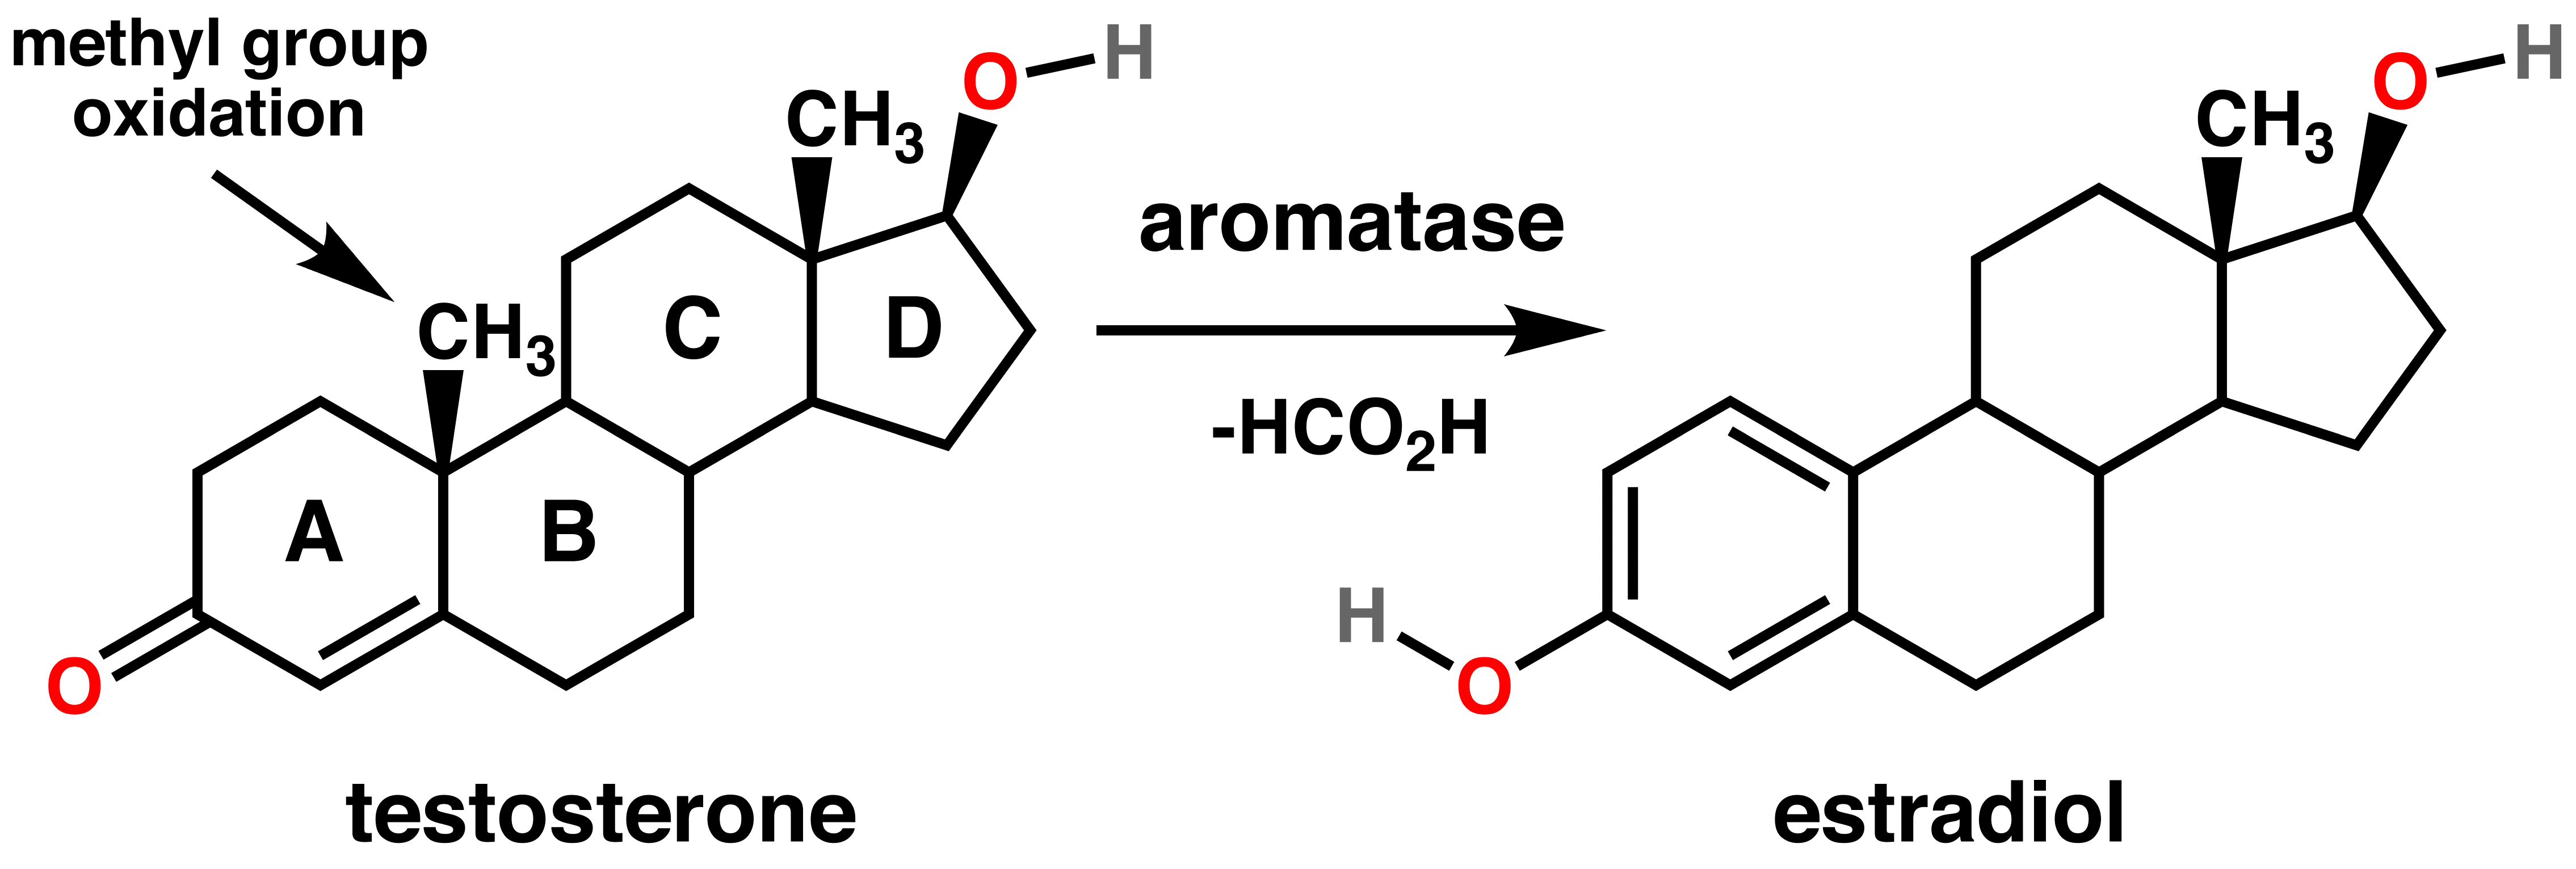 Testosterone estradiol conversion.png